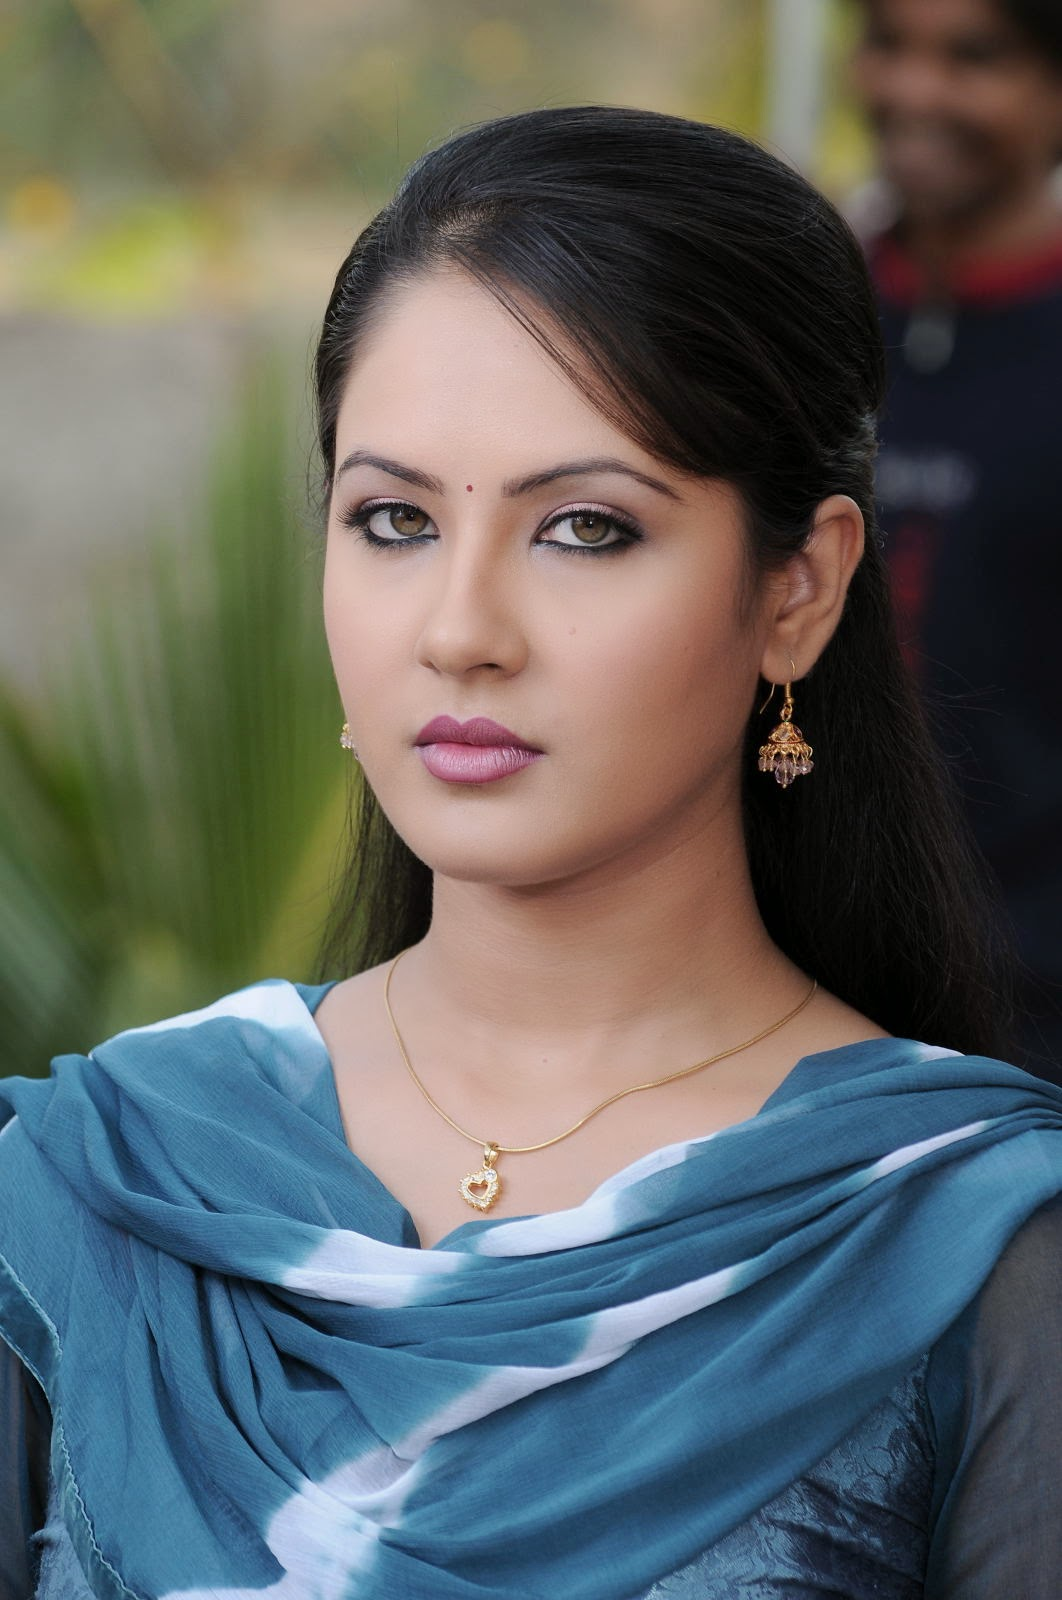 Pooja bose hd wallpapers free download lab4photo.